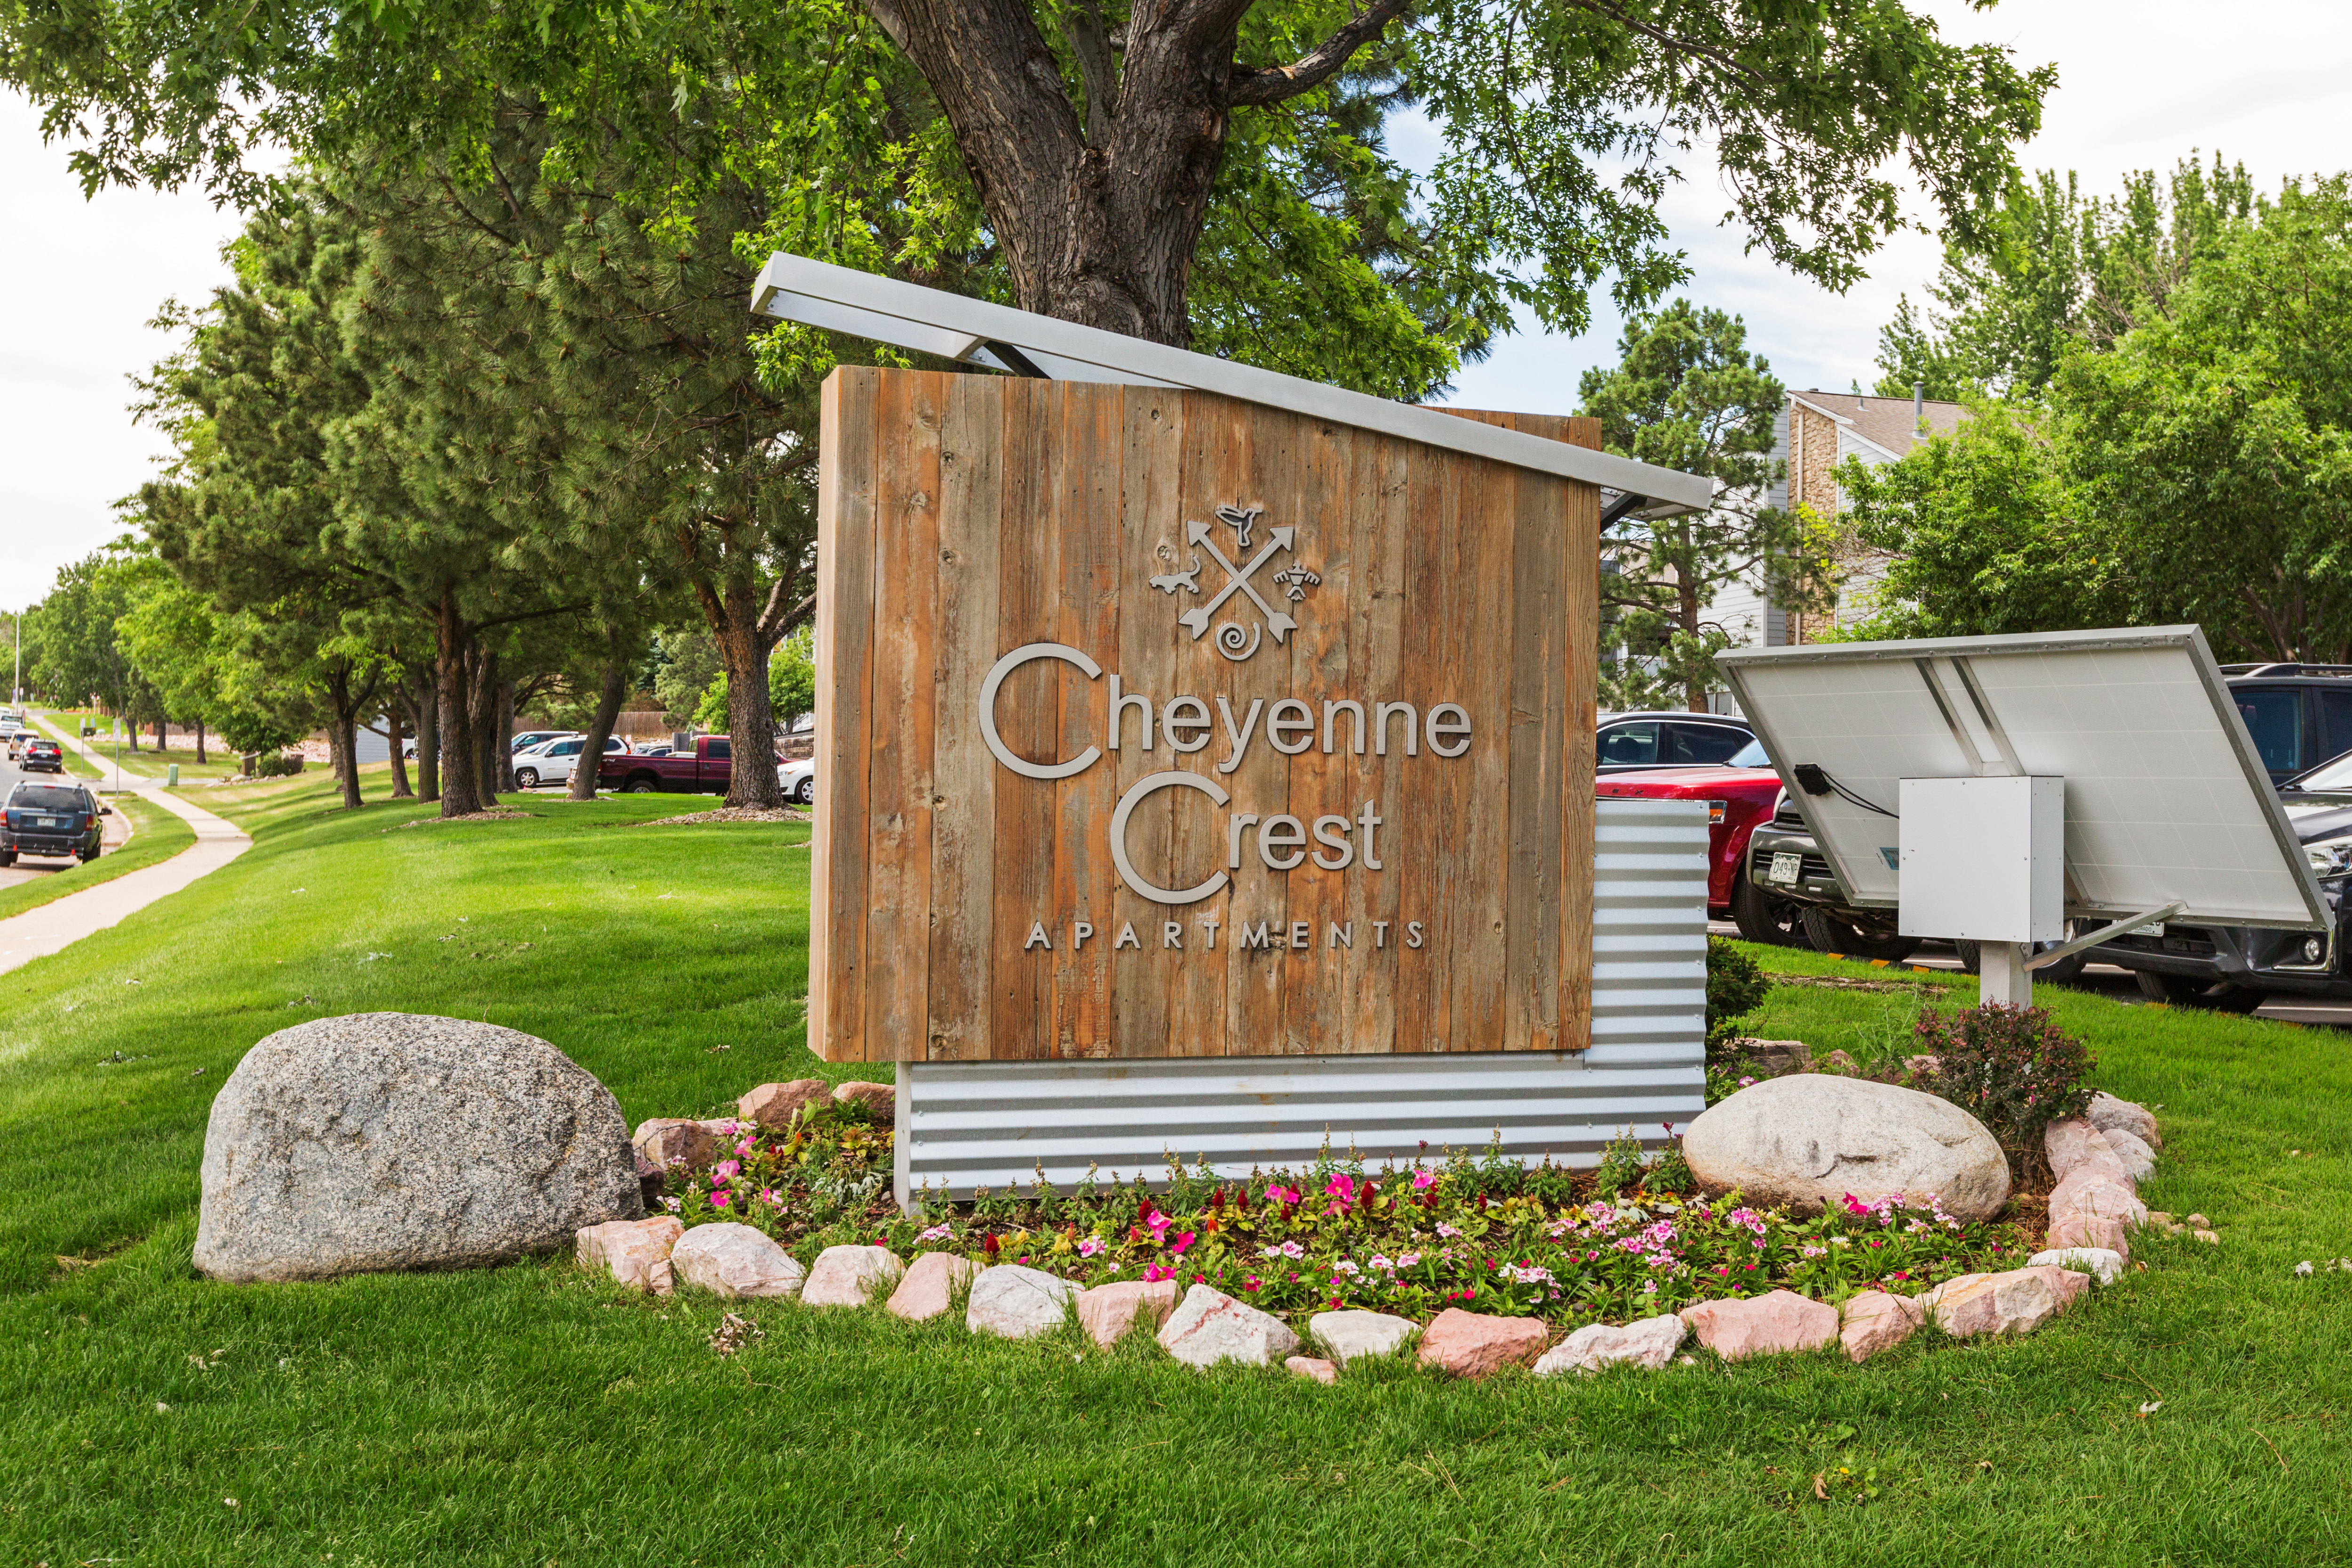 Cheyenne Crest Apartments for rent